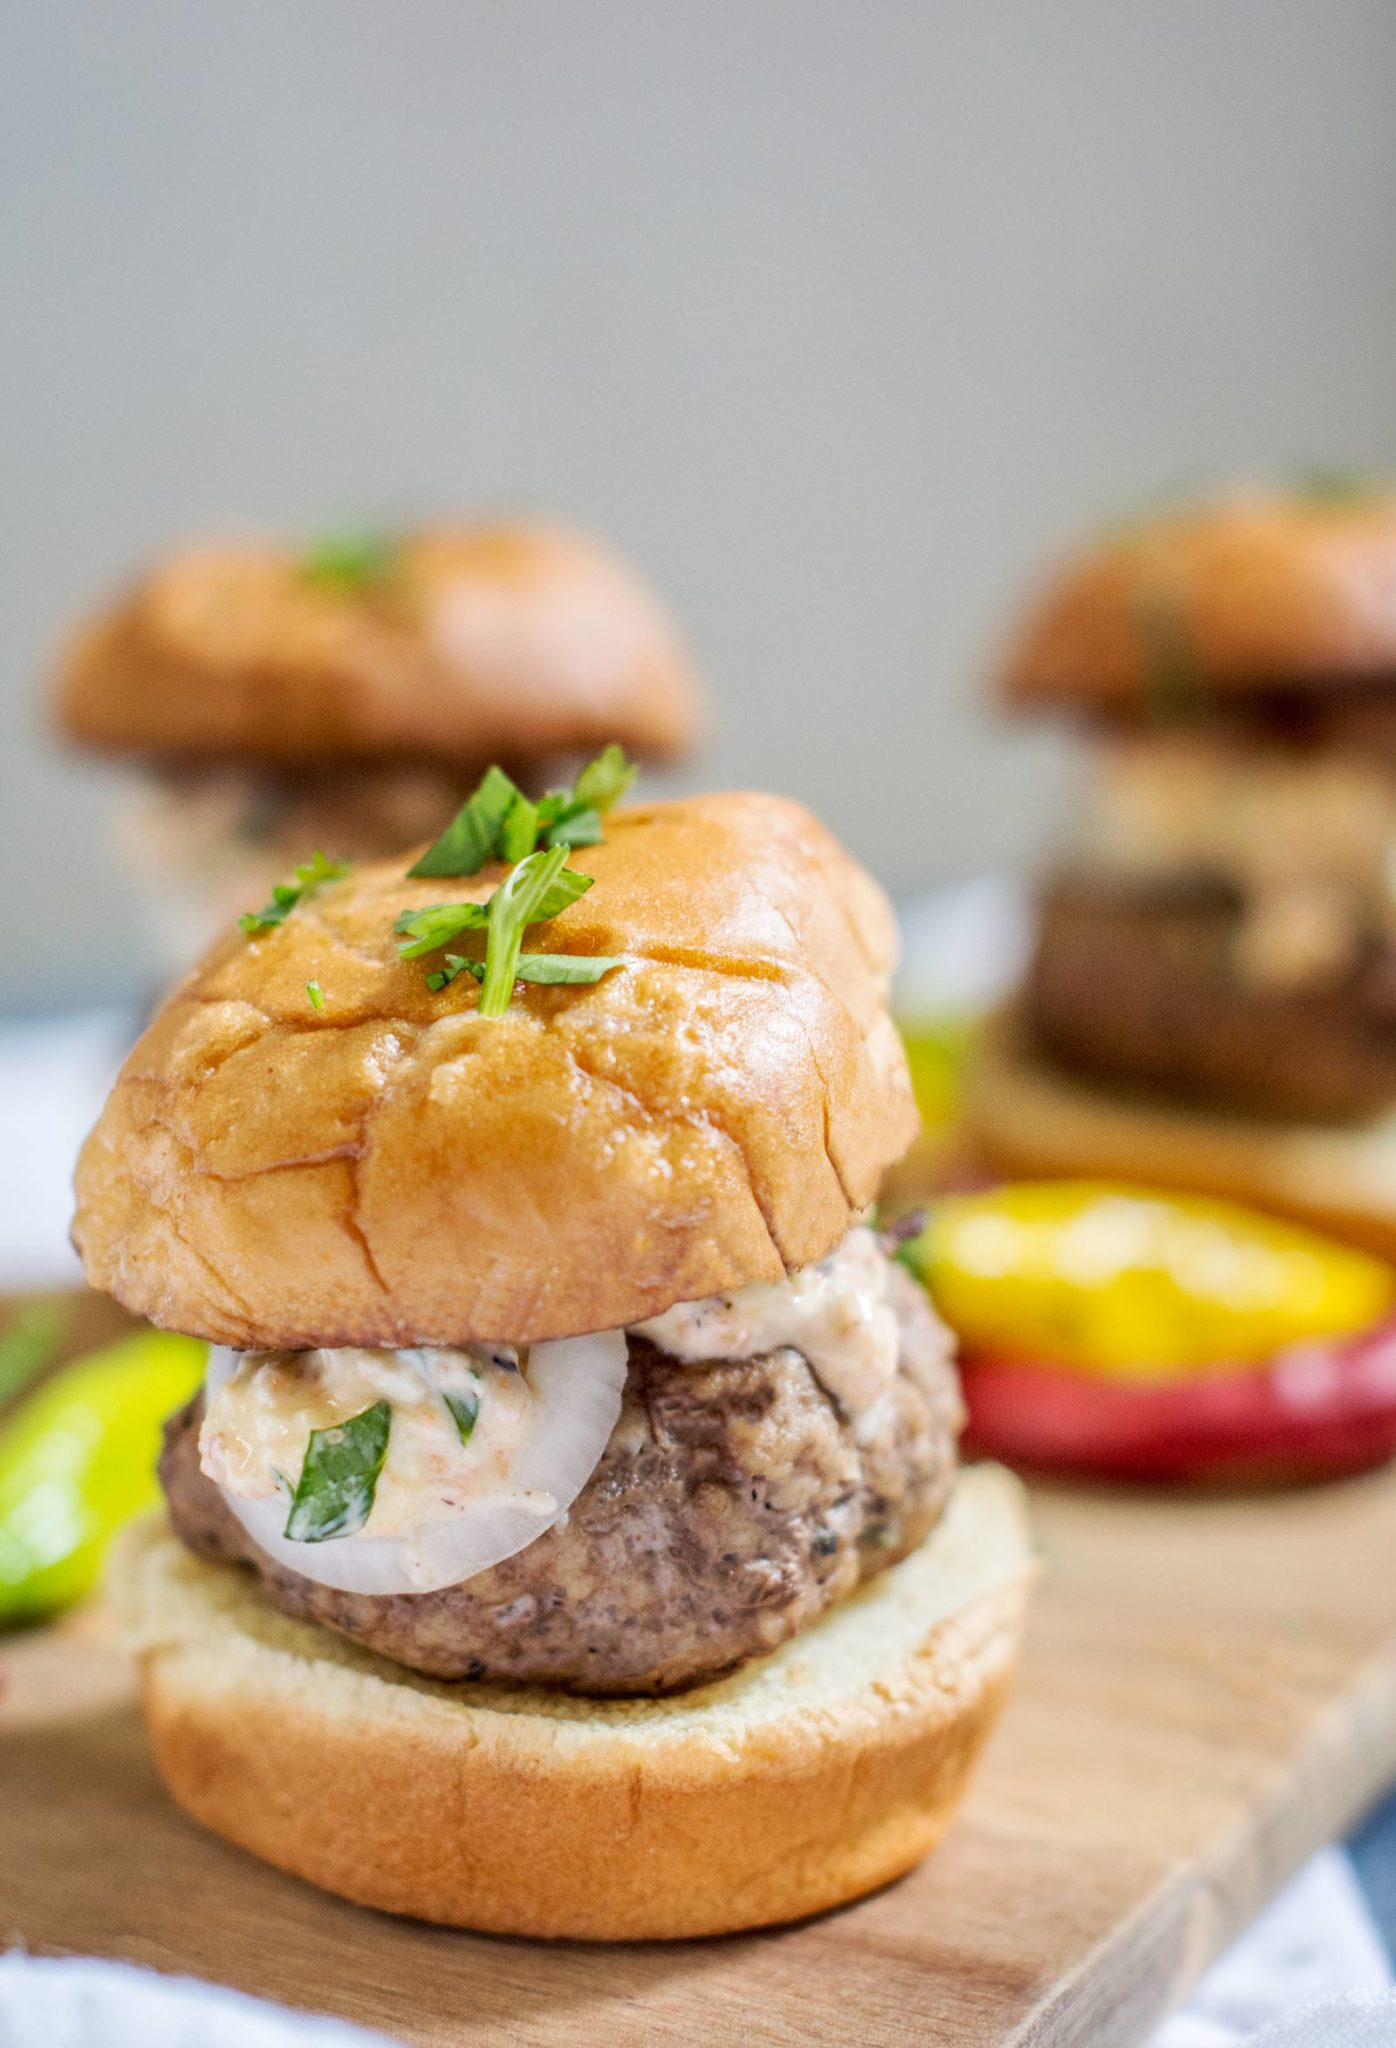 Try these gorgeous Aussie Lamb Burger Sliders this summer & enjoy with friends & family in the #GreaterOutoors! They're #Aussome @aussiebeeflamb @biggreenegg #ad